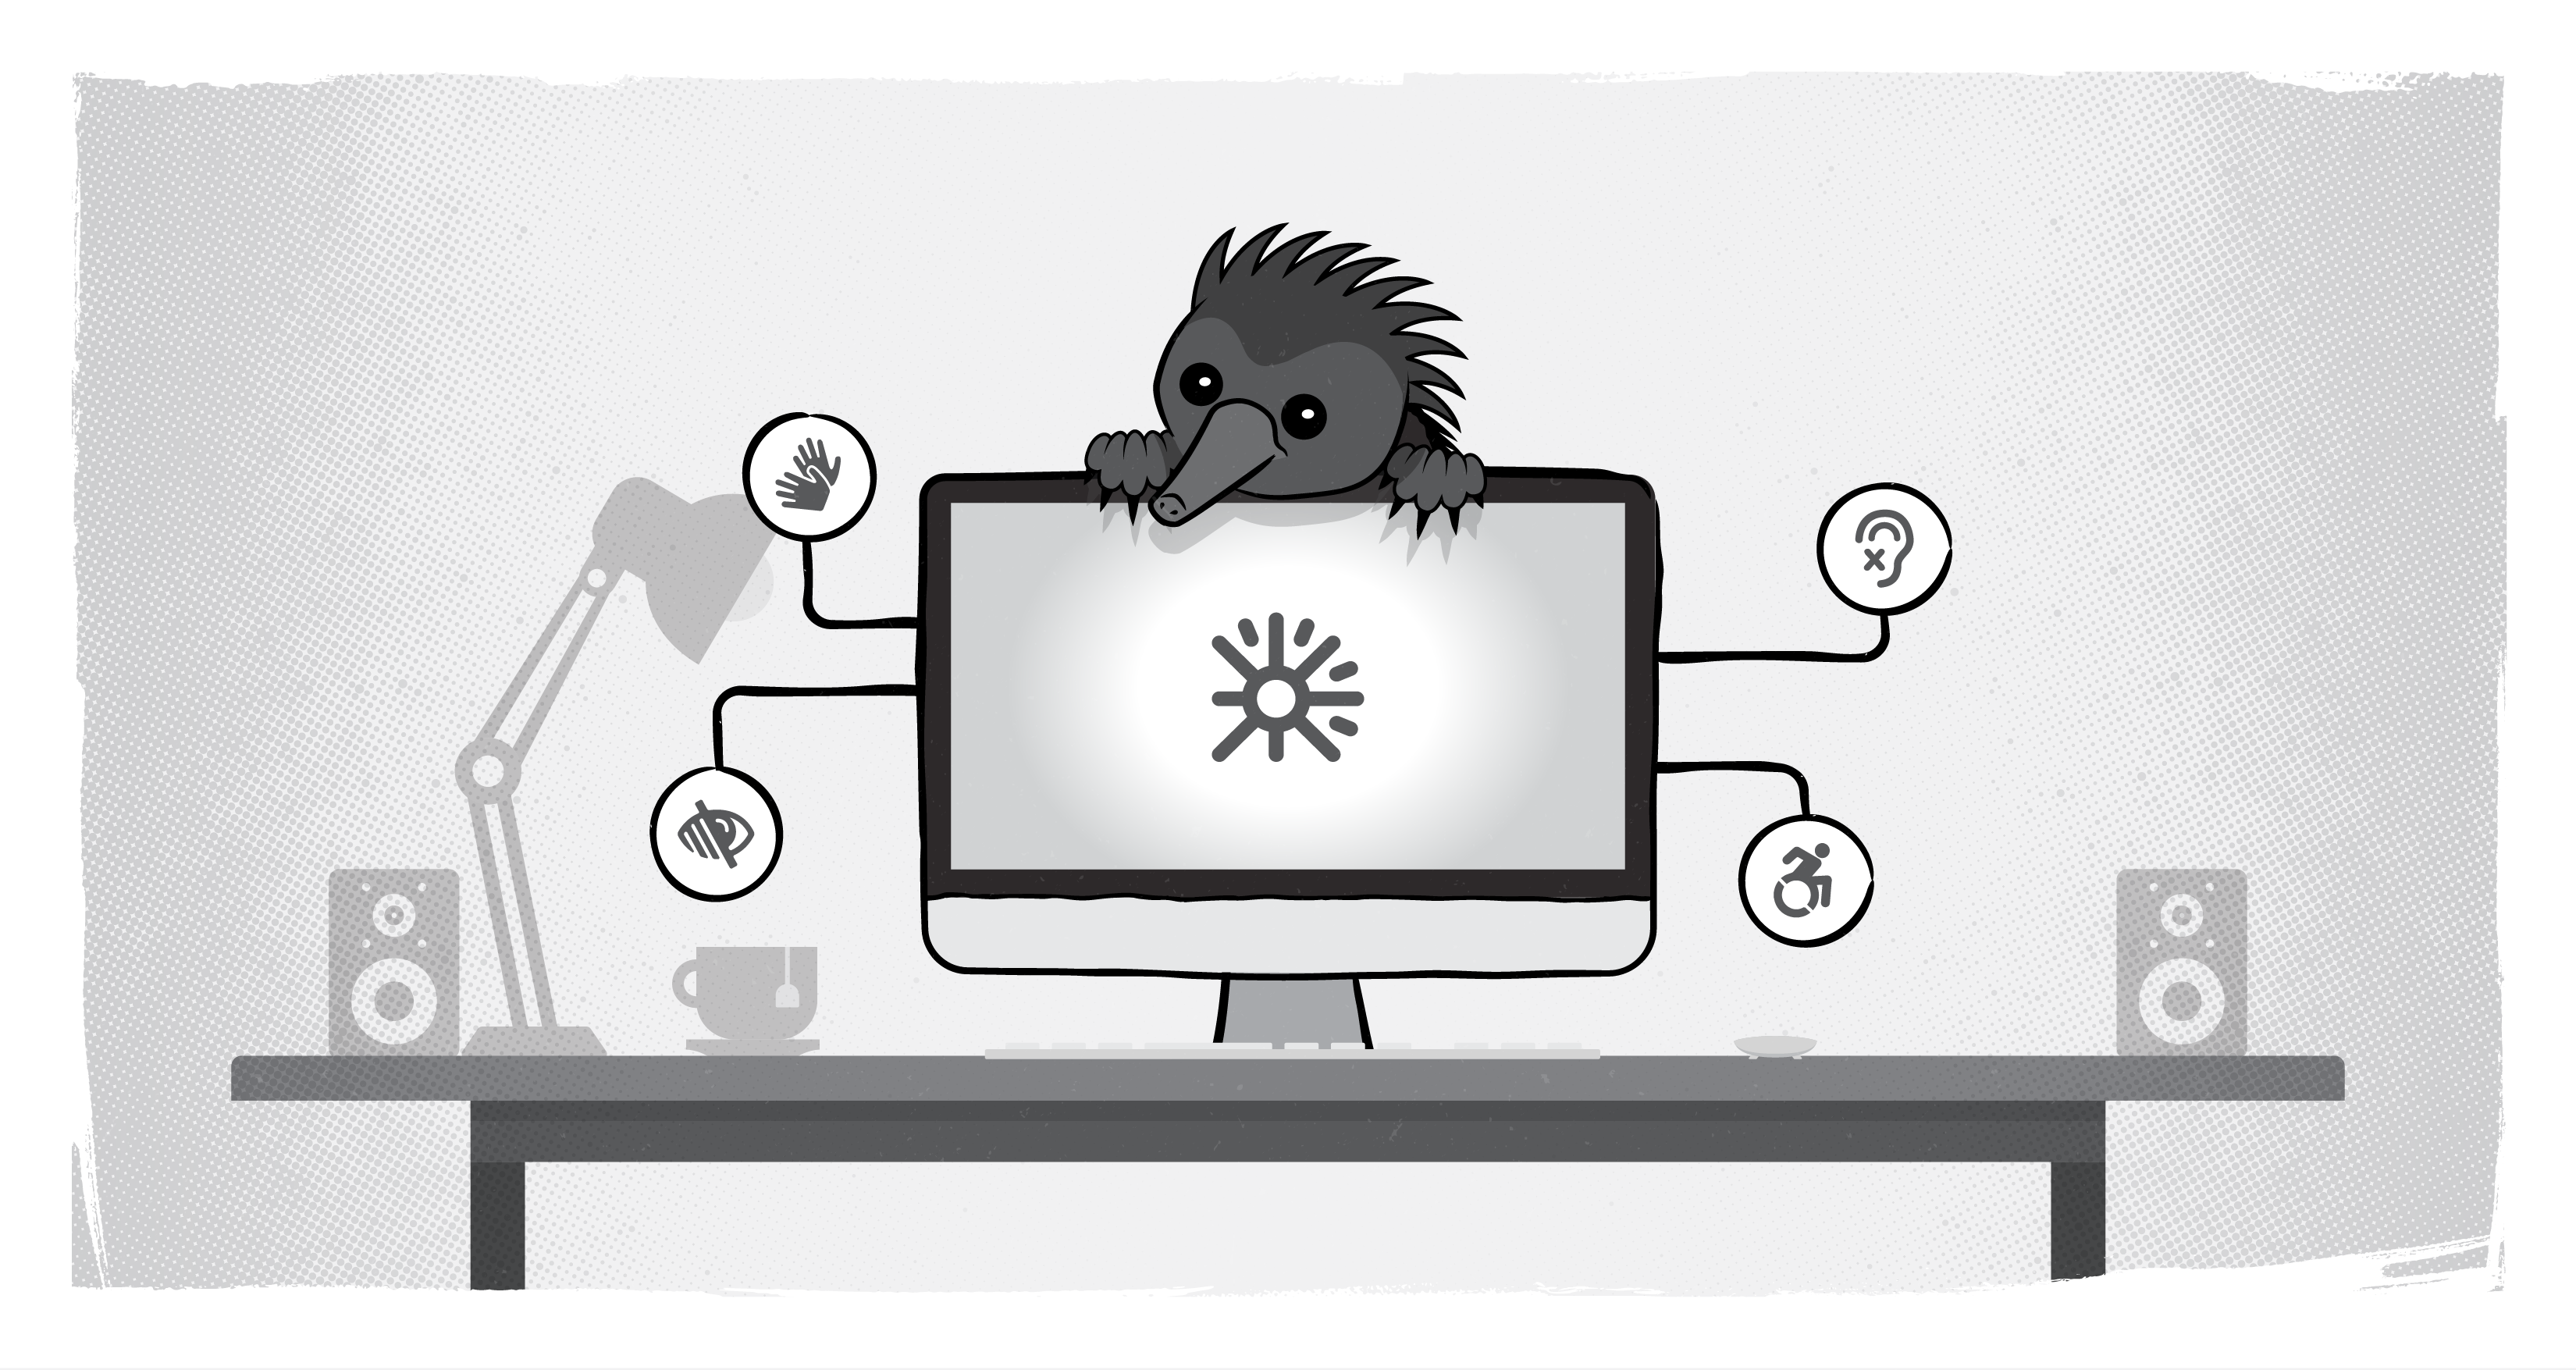 Echidna with computer and accessibility symbols